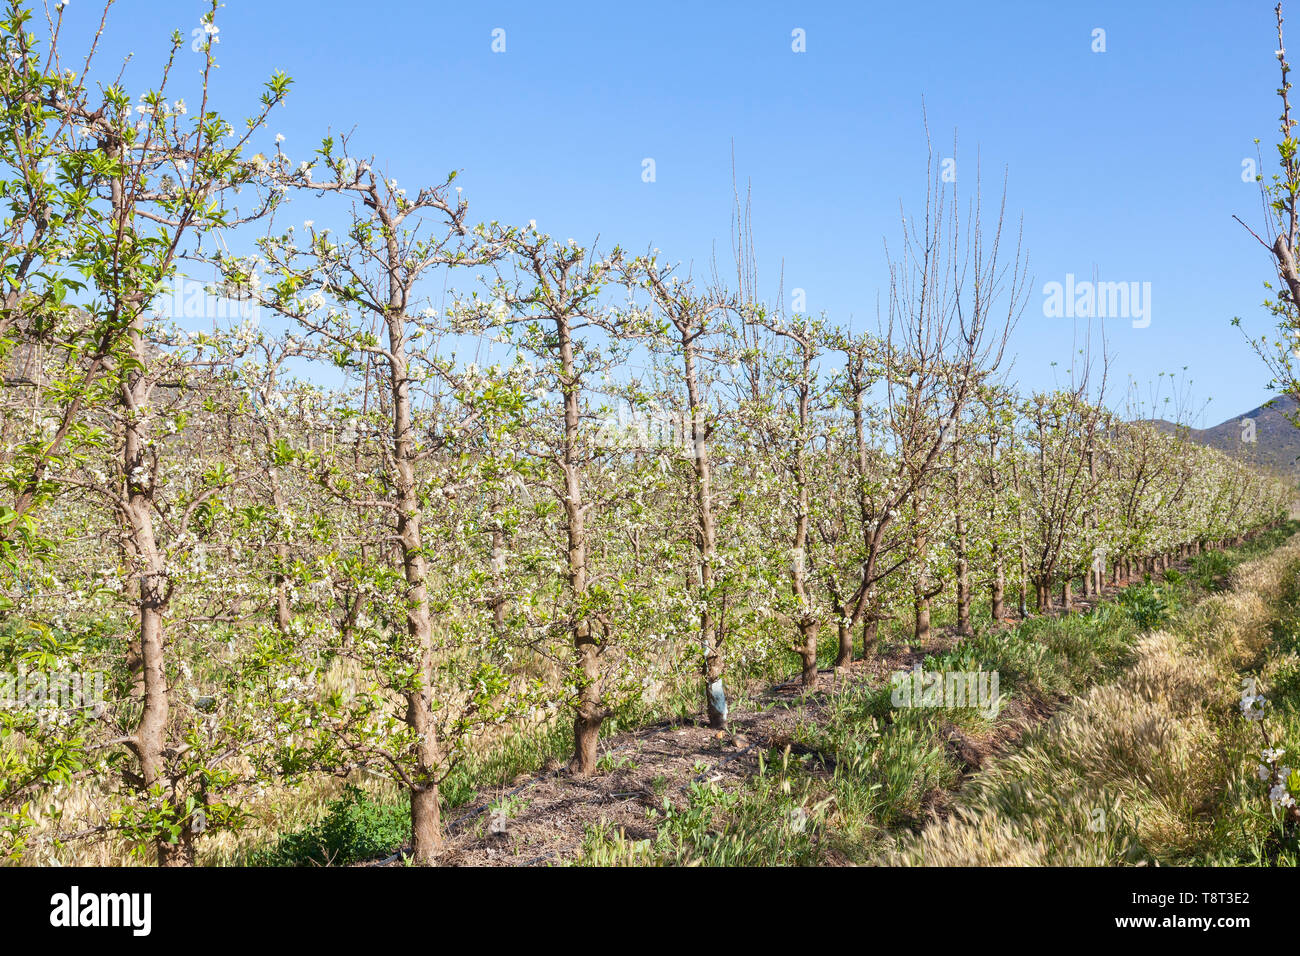 Row of neat pruned and trellised peach trees in an orchard  on a farm in spring with white  spring blossom, crop, agriculture, agronomy - Stock Image